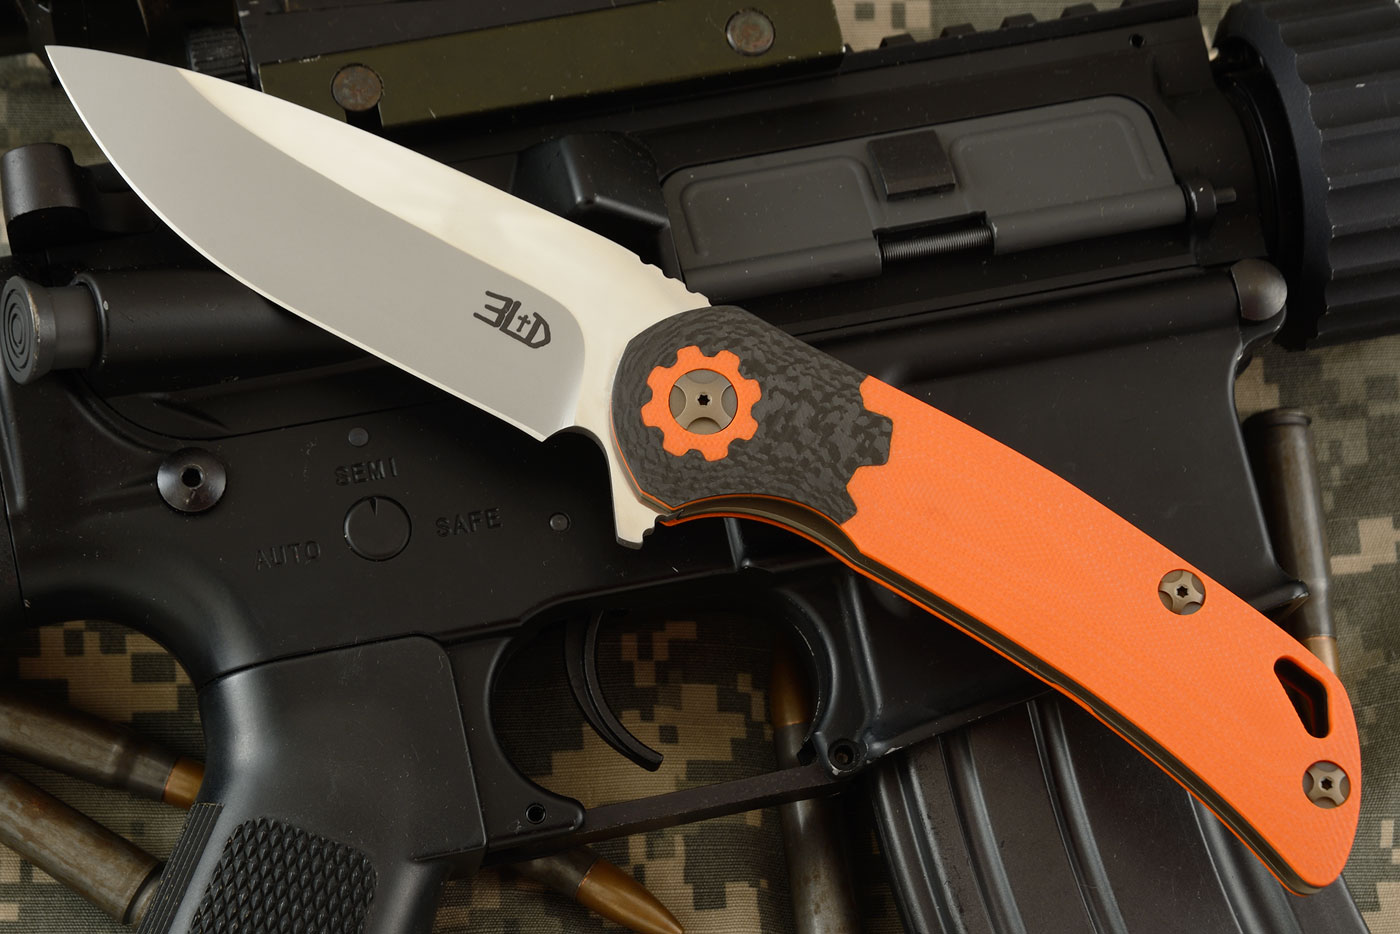 T3 Flipper - Torx - Orange G10 and Carbon Fiber (Ceramic IKBS) - ELMAX